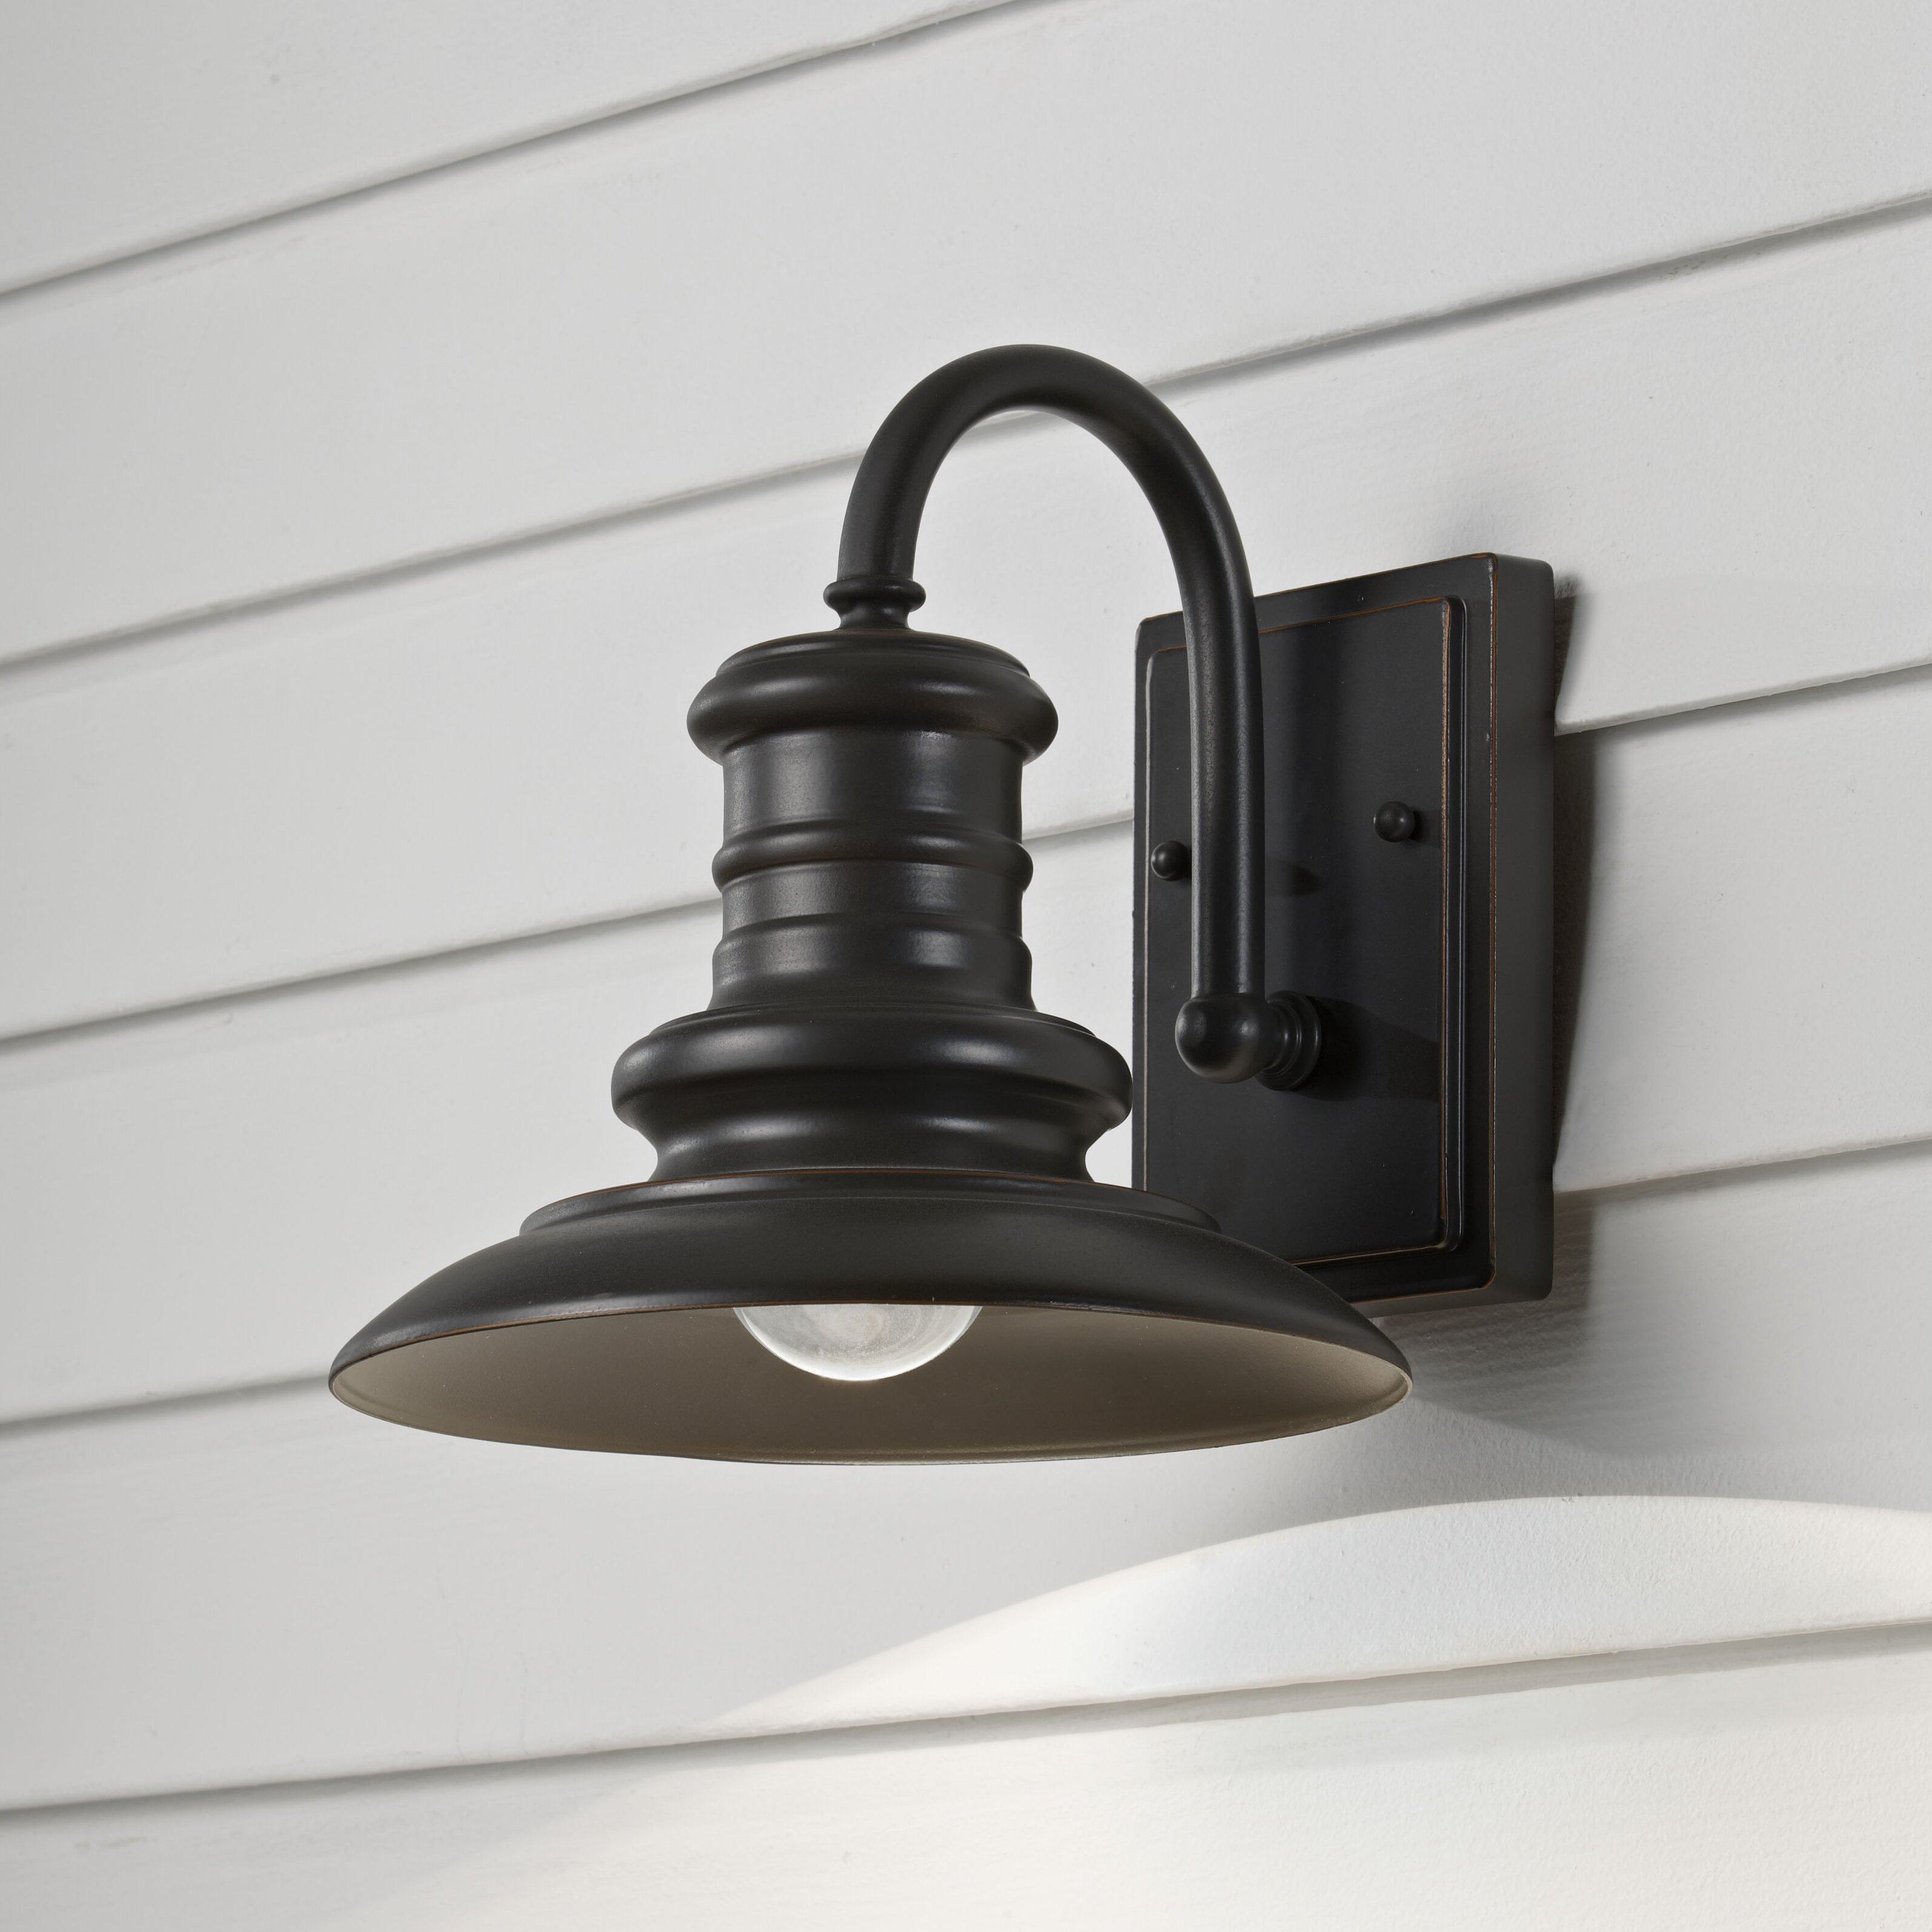 Brayden Studio Colunga 1 Light Outdoor Barn Light